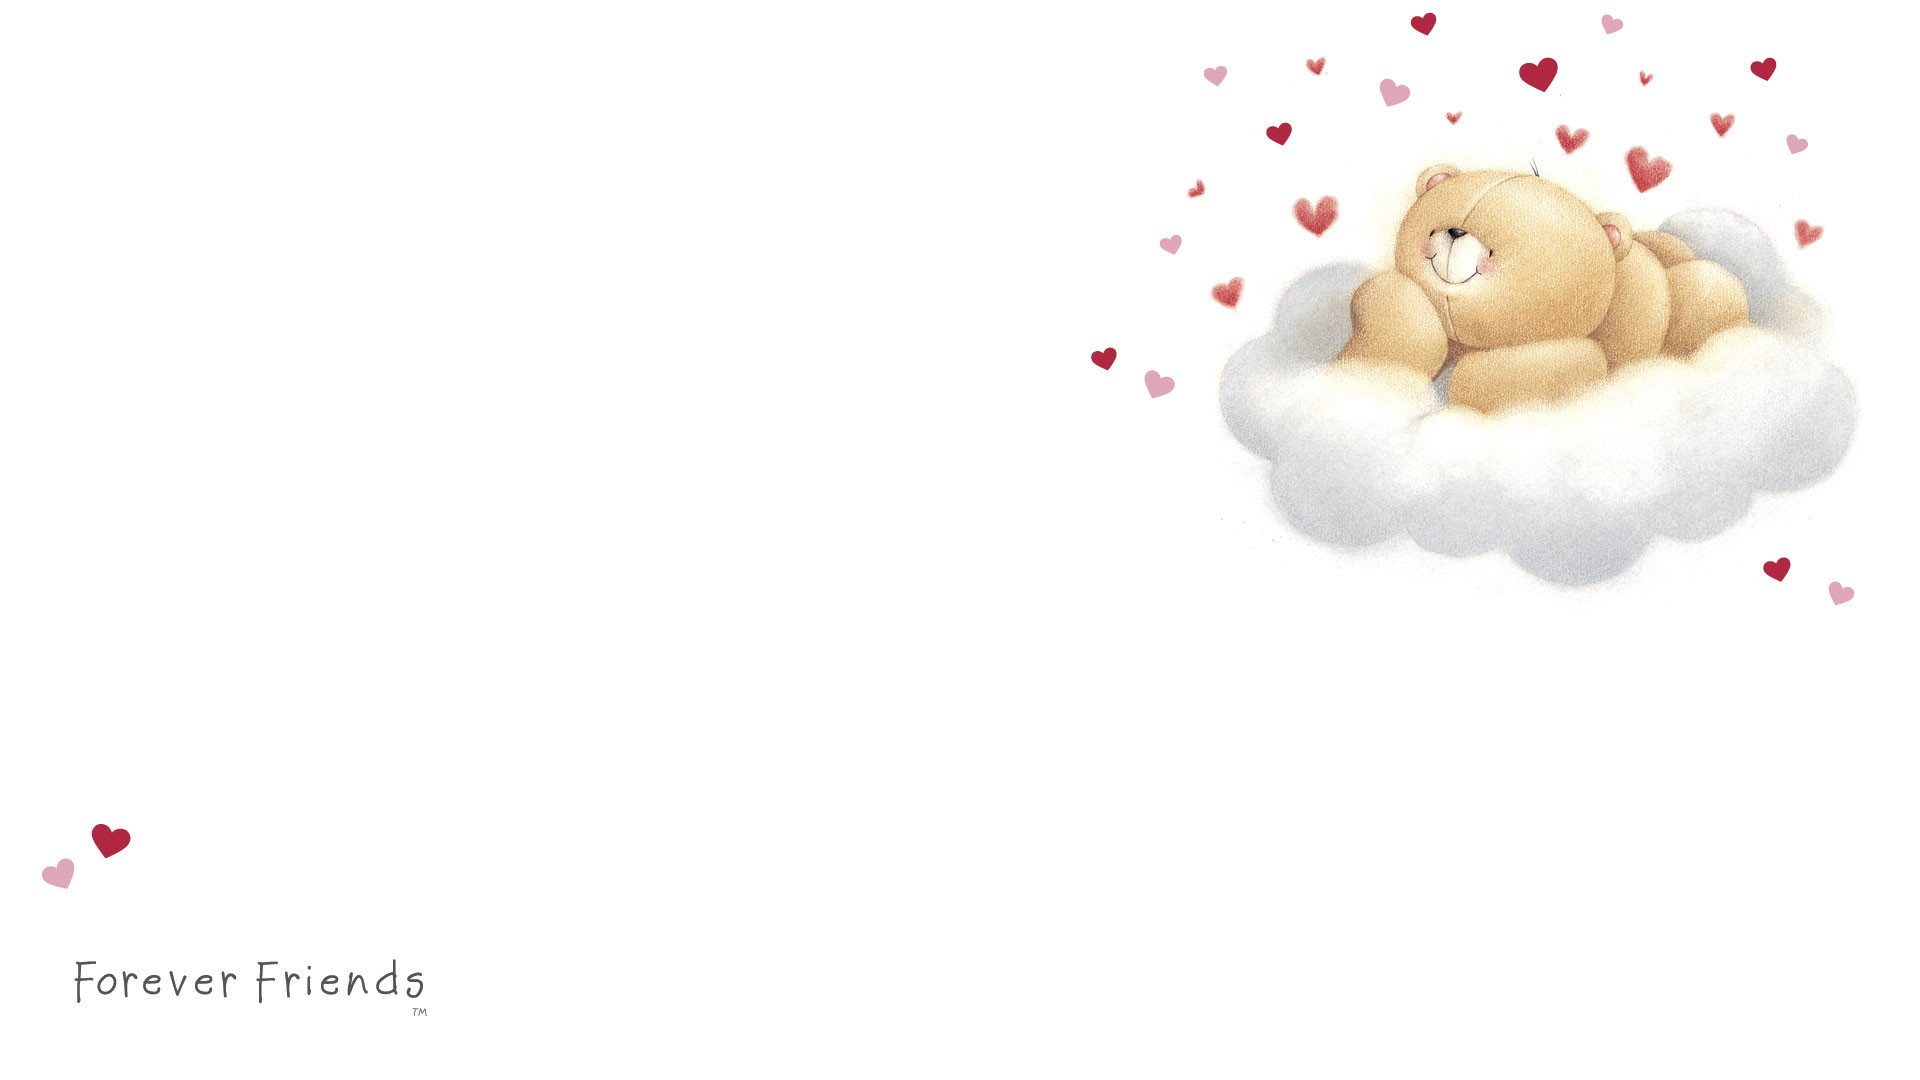 1920x1080 www.foreverfriends.com content uploads _wallpapers 1415117874.jpg |  imagenes forever friends | Pinterest | Wallpaper and Bears